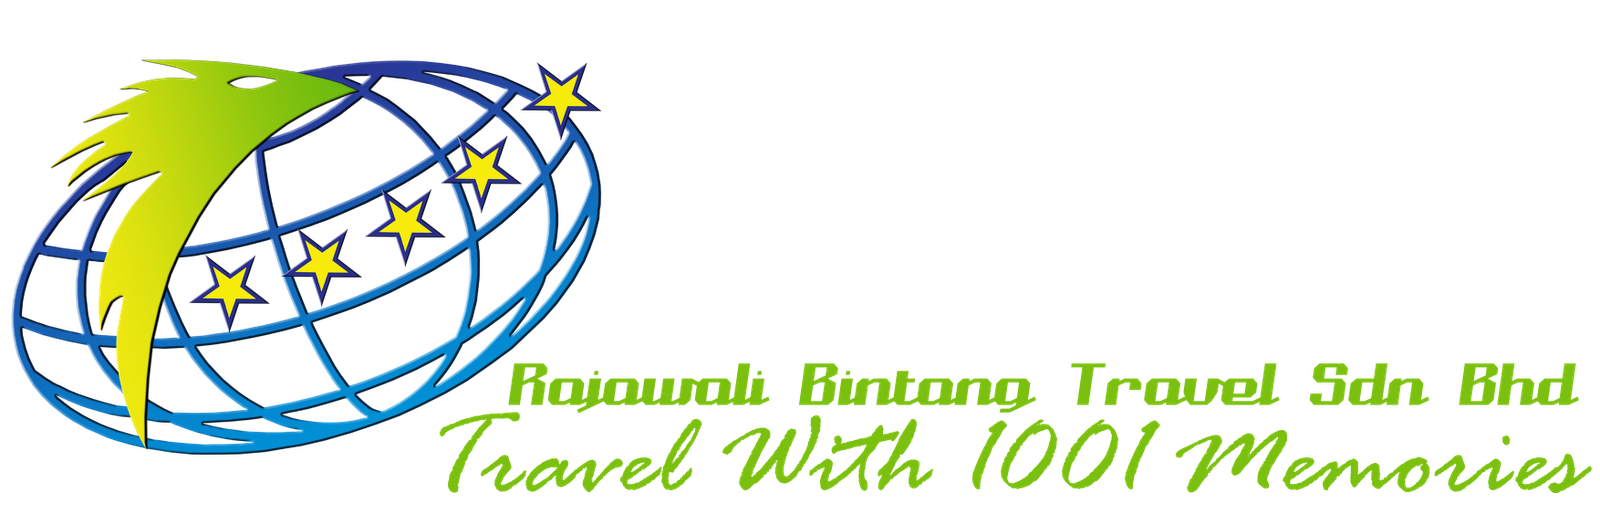 Travel with 1001 memories